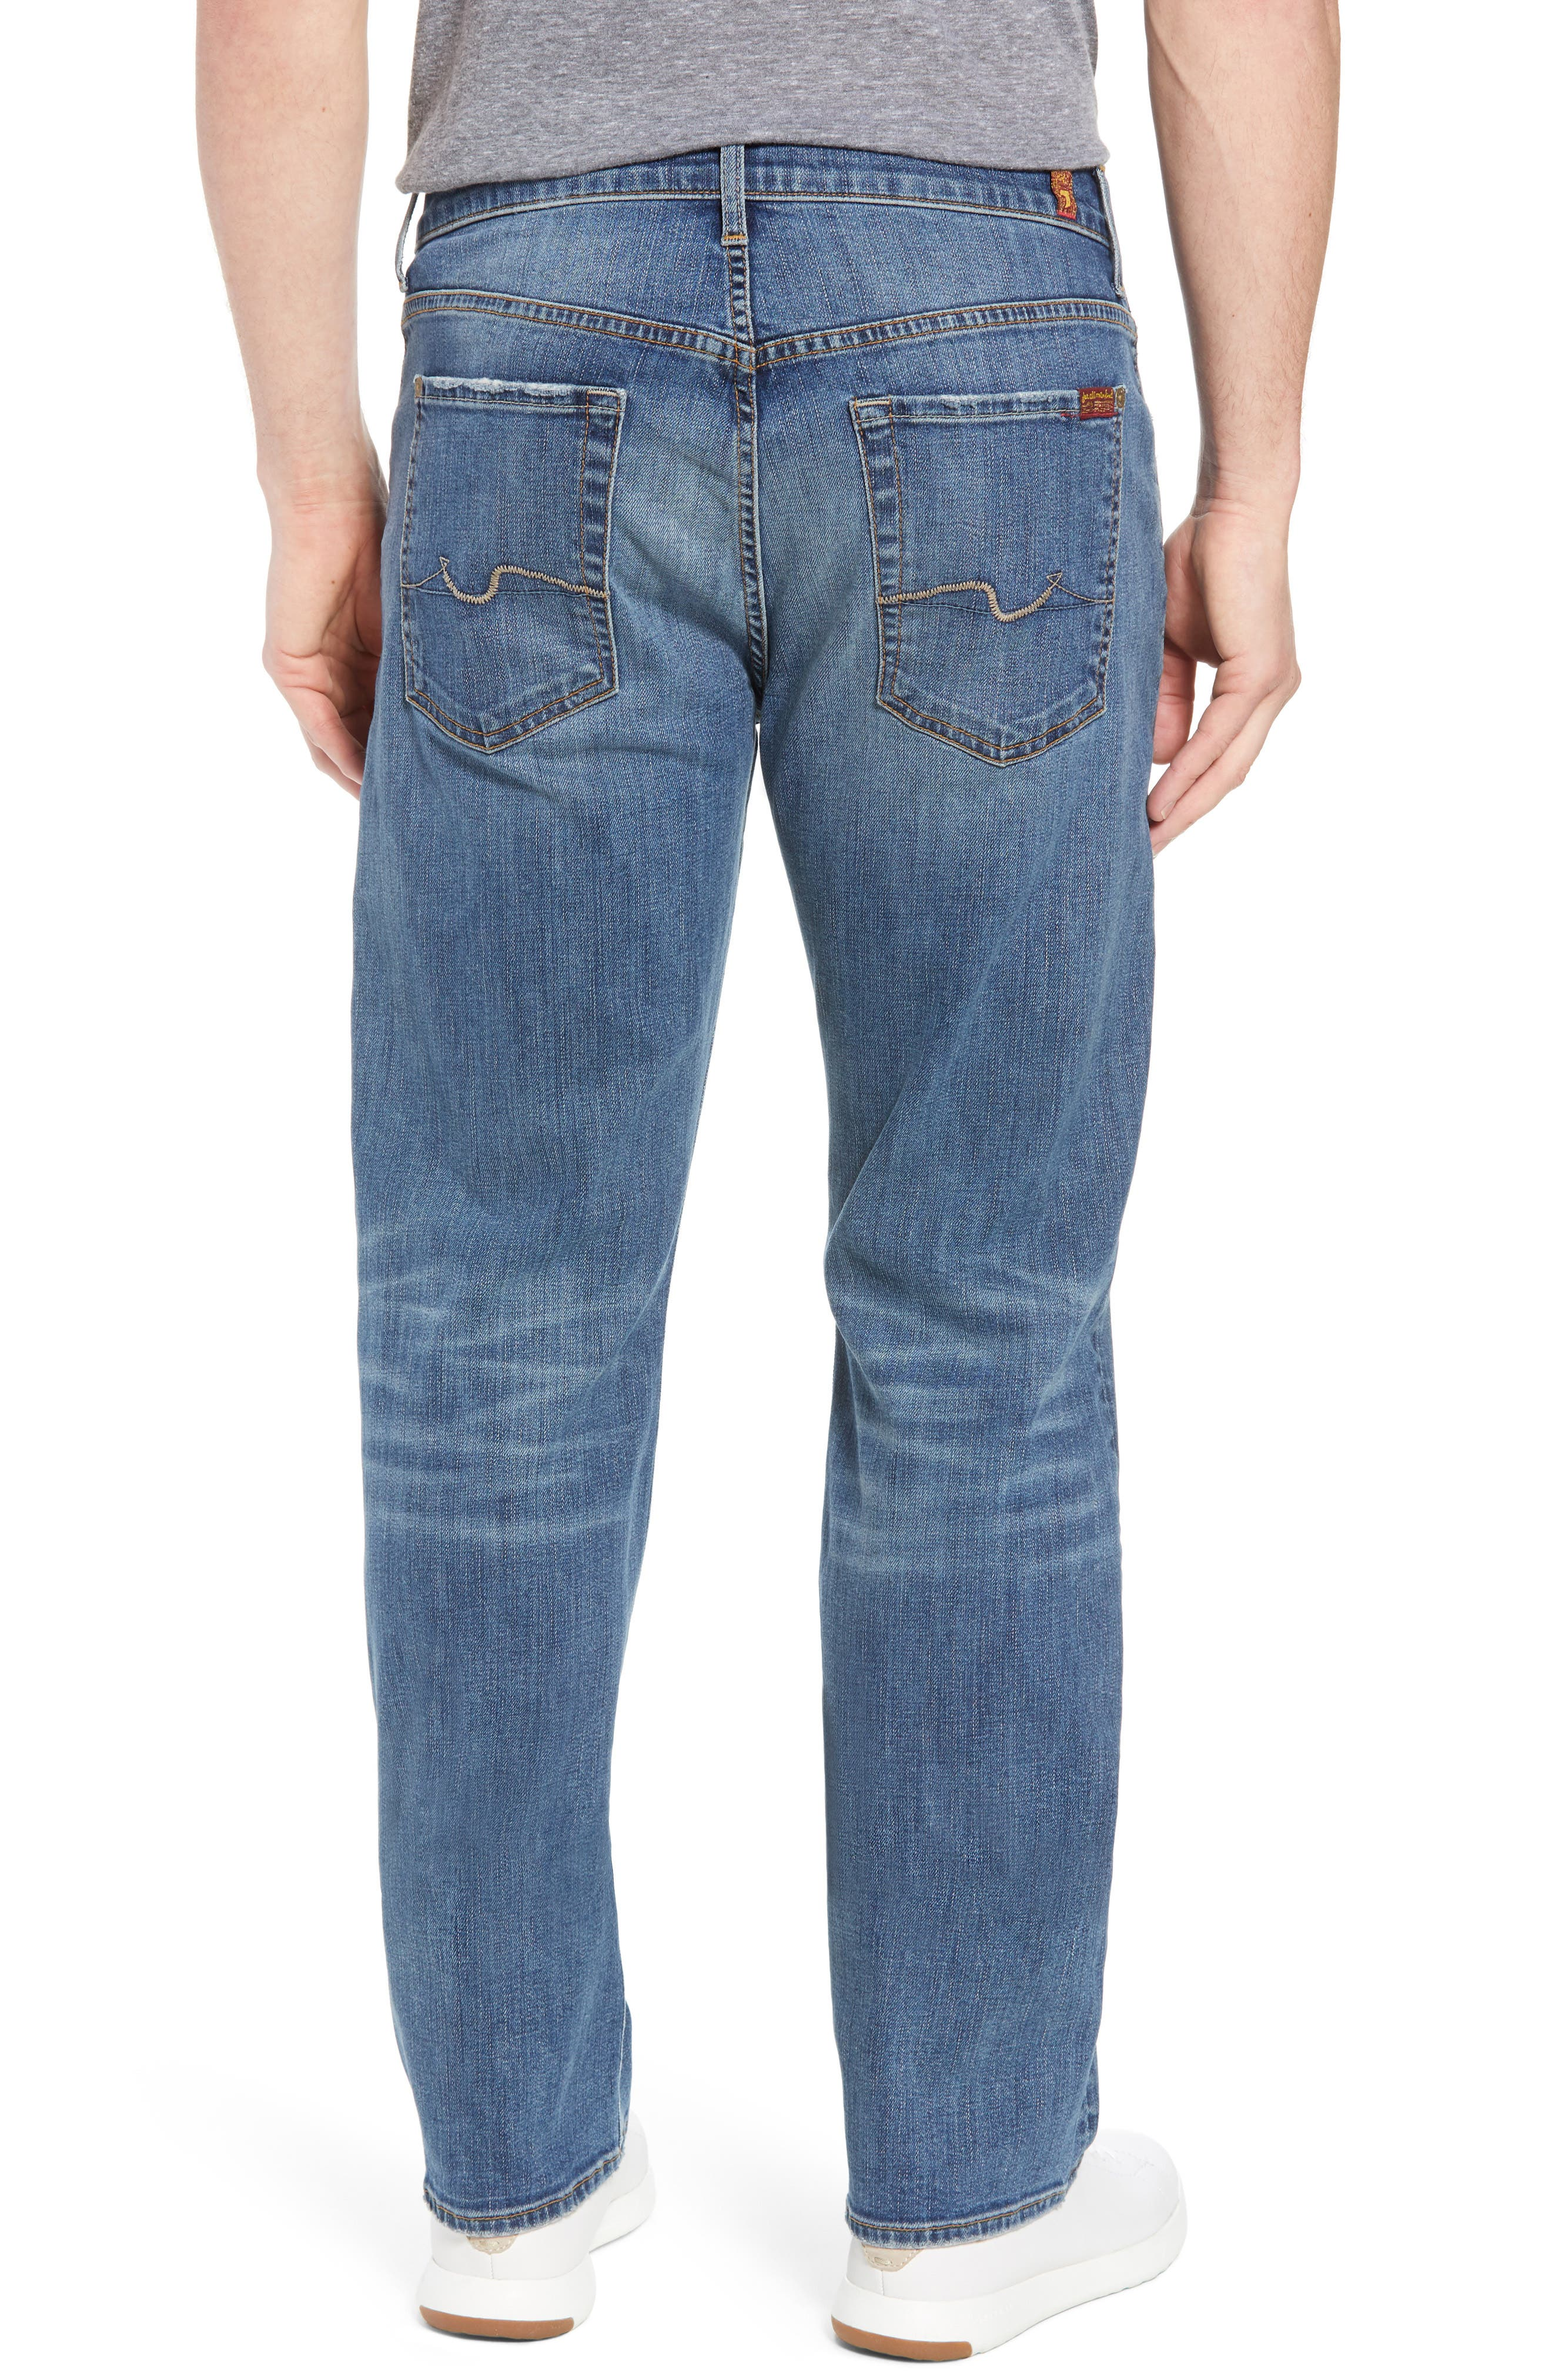 Luxe Performance - Austyn Relaxed Fit Jeans,                             Alternate thumbnail 2, color,                             Bedrock